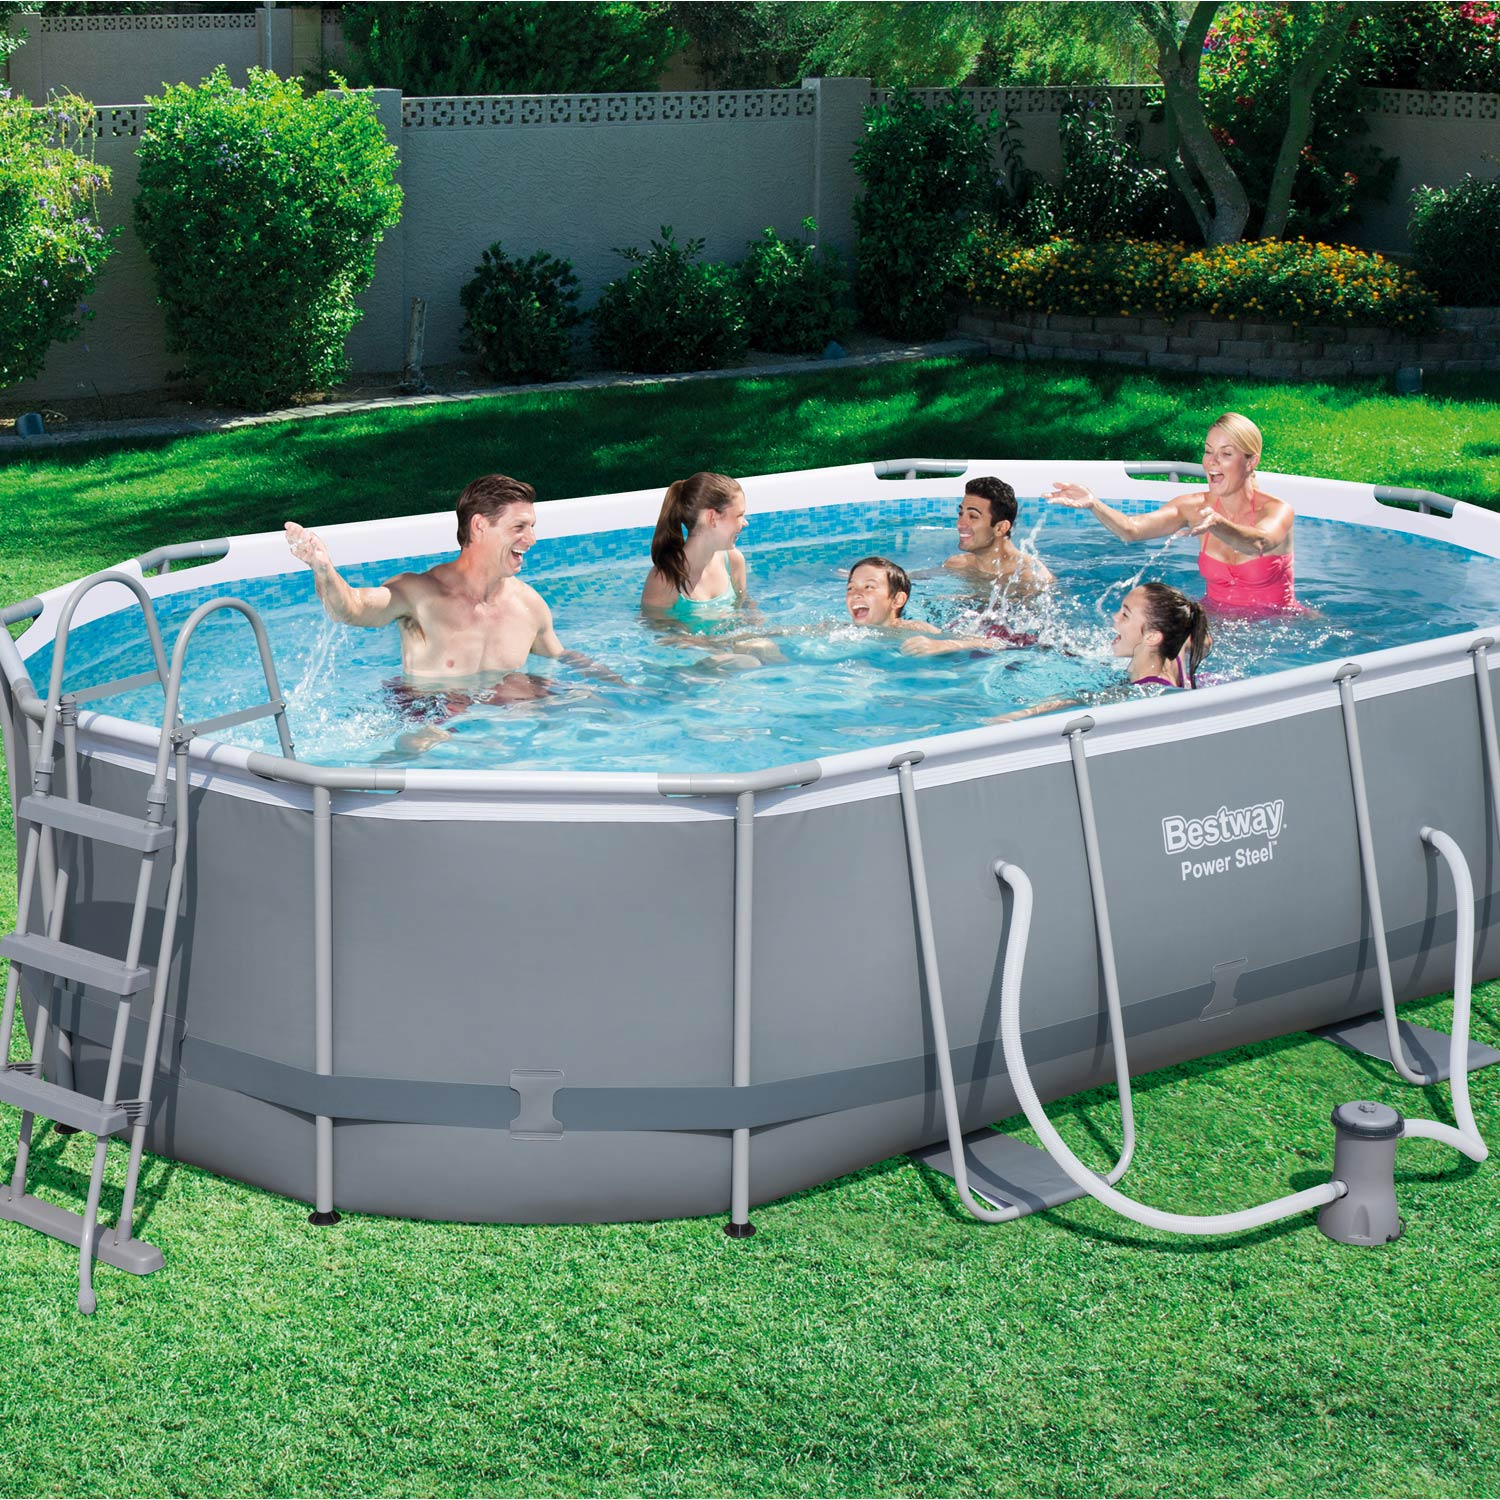 Piscine hors sol autoportante tubulaire bestway l x for Piscine hors sol dimension